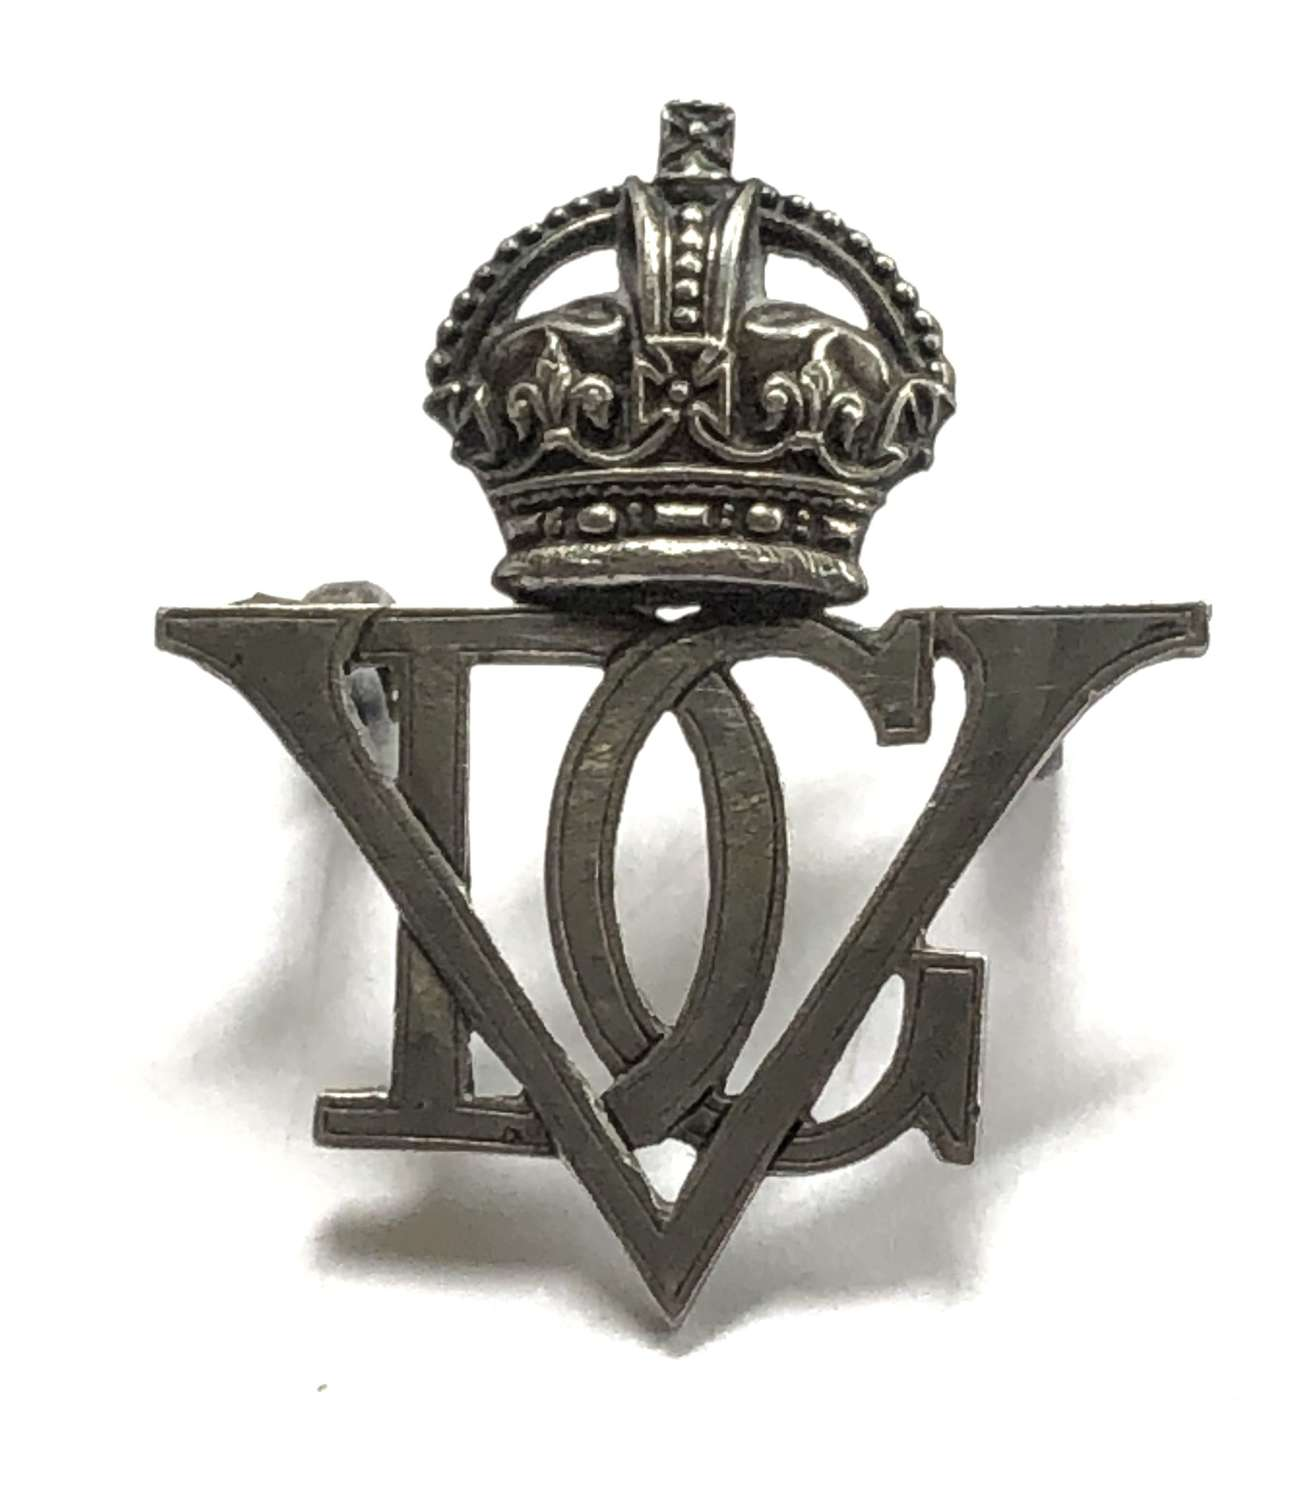 5th Royal Inniskilling Dragoon Guards Officer's silver cap badge